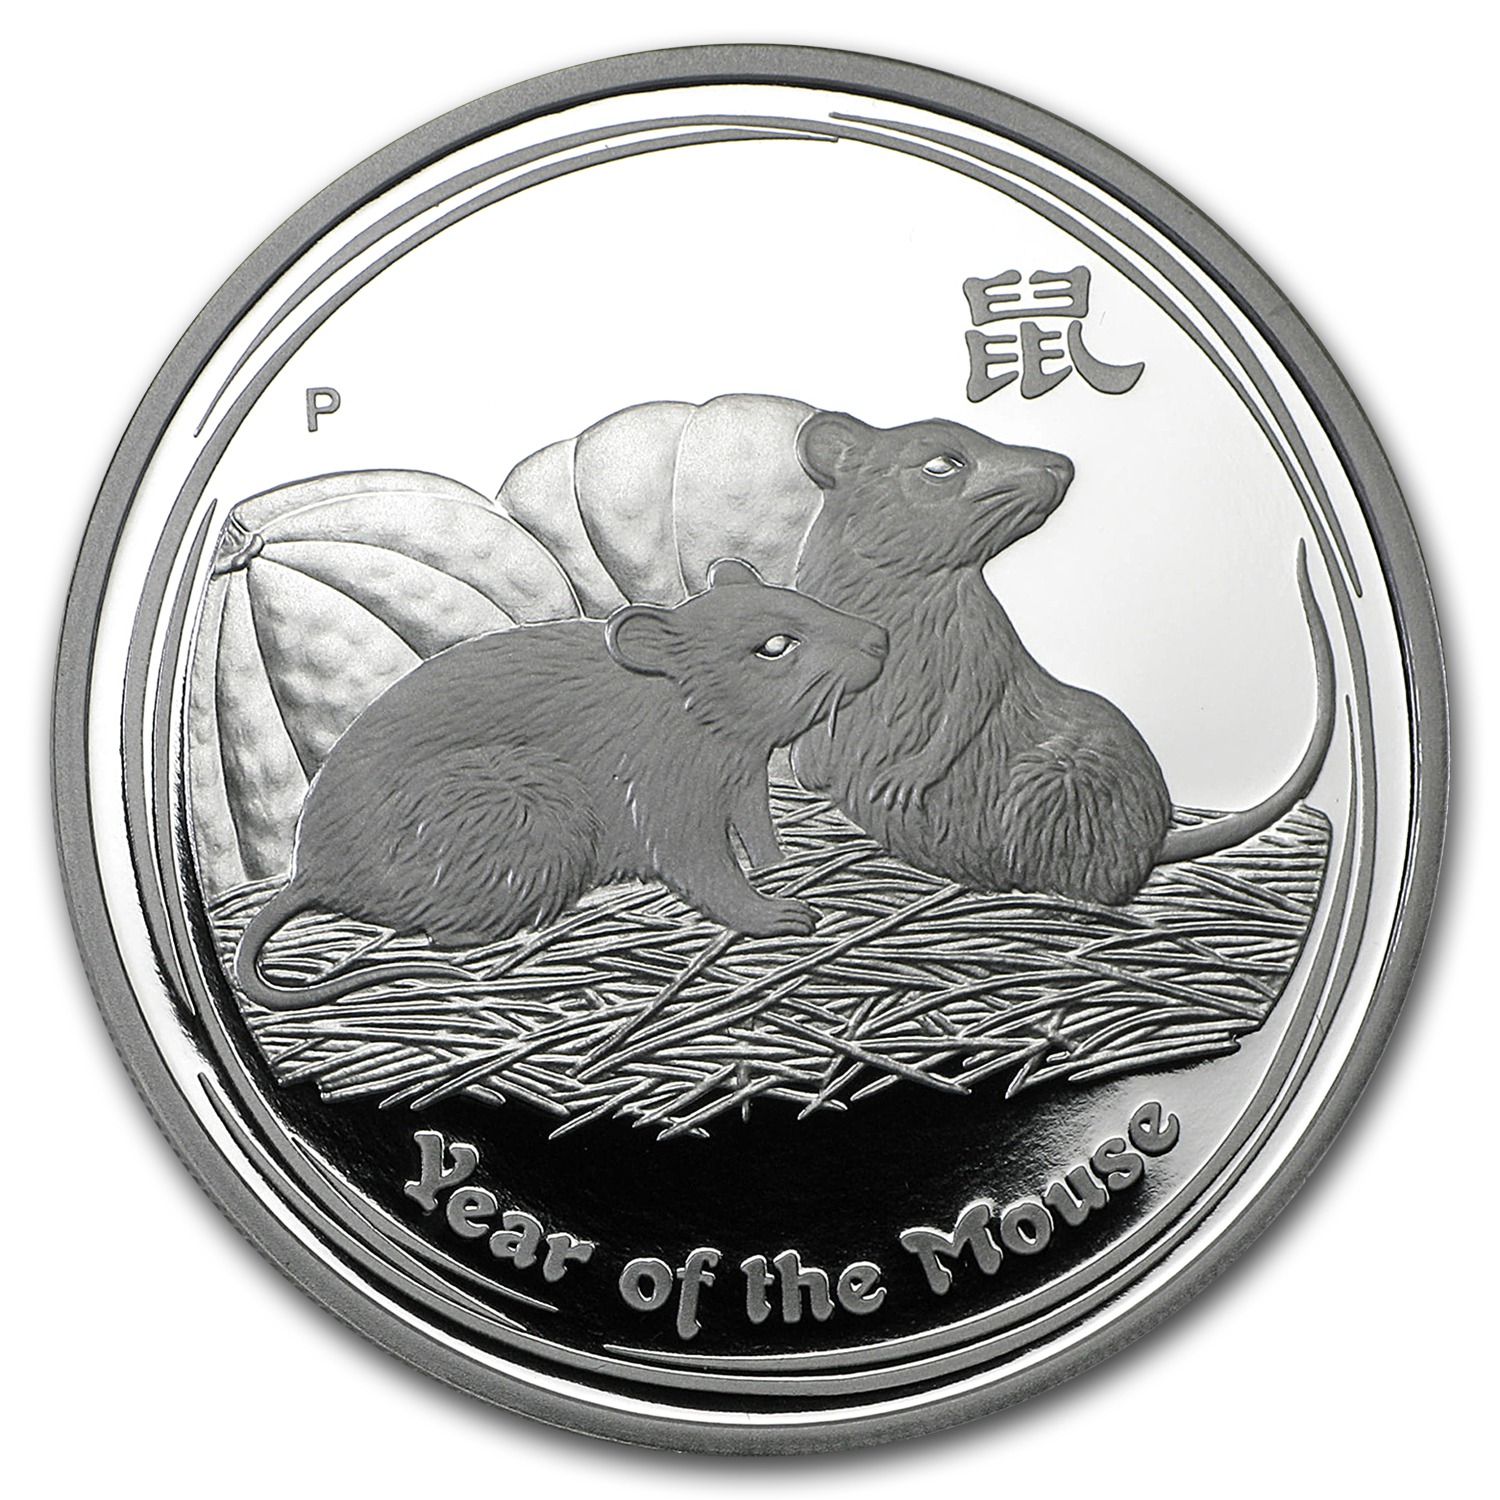 2008 Australia 1 oz Silver Year of the Mouse Proof (Series II)